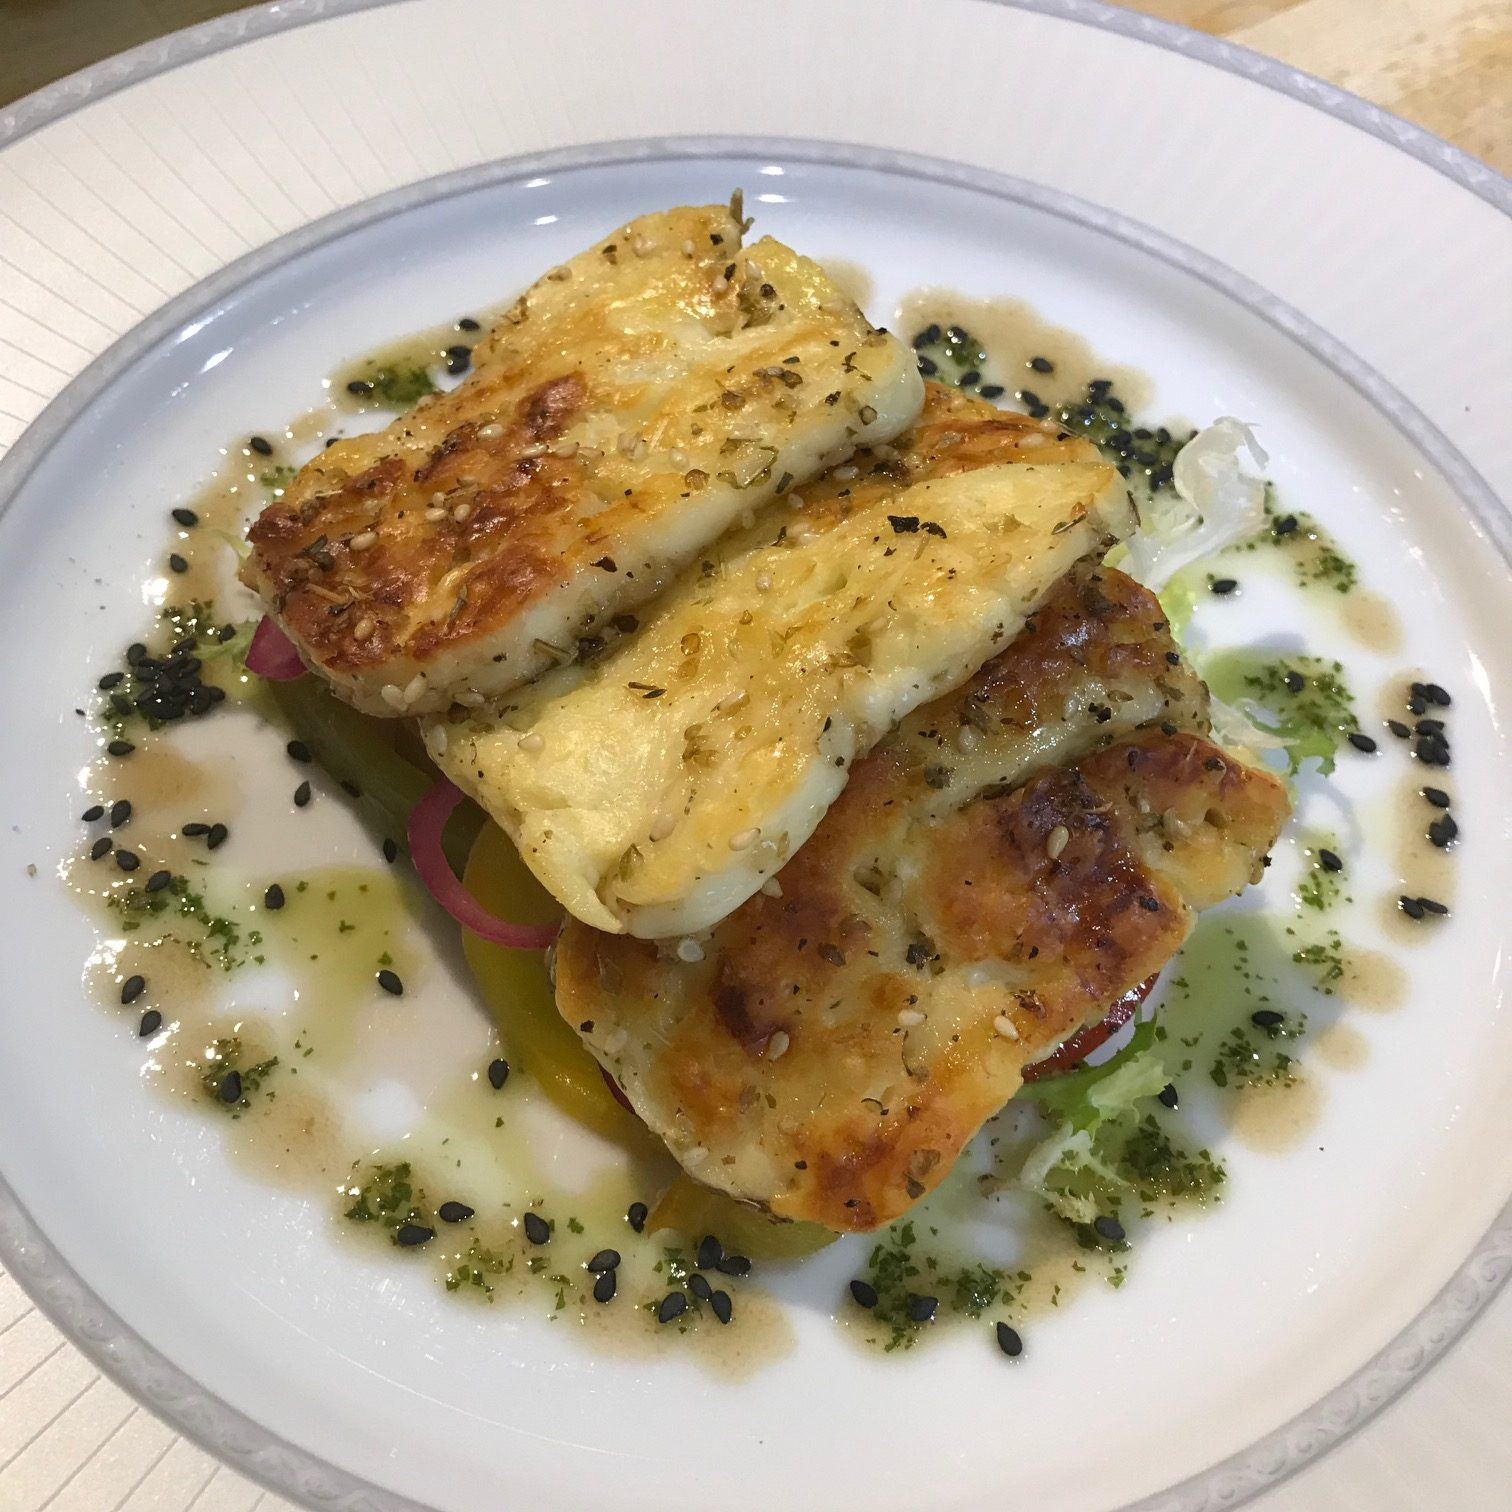 20190815 - Halloumi with Tomatoes, Sweet Peppers & Shallots